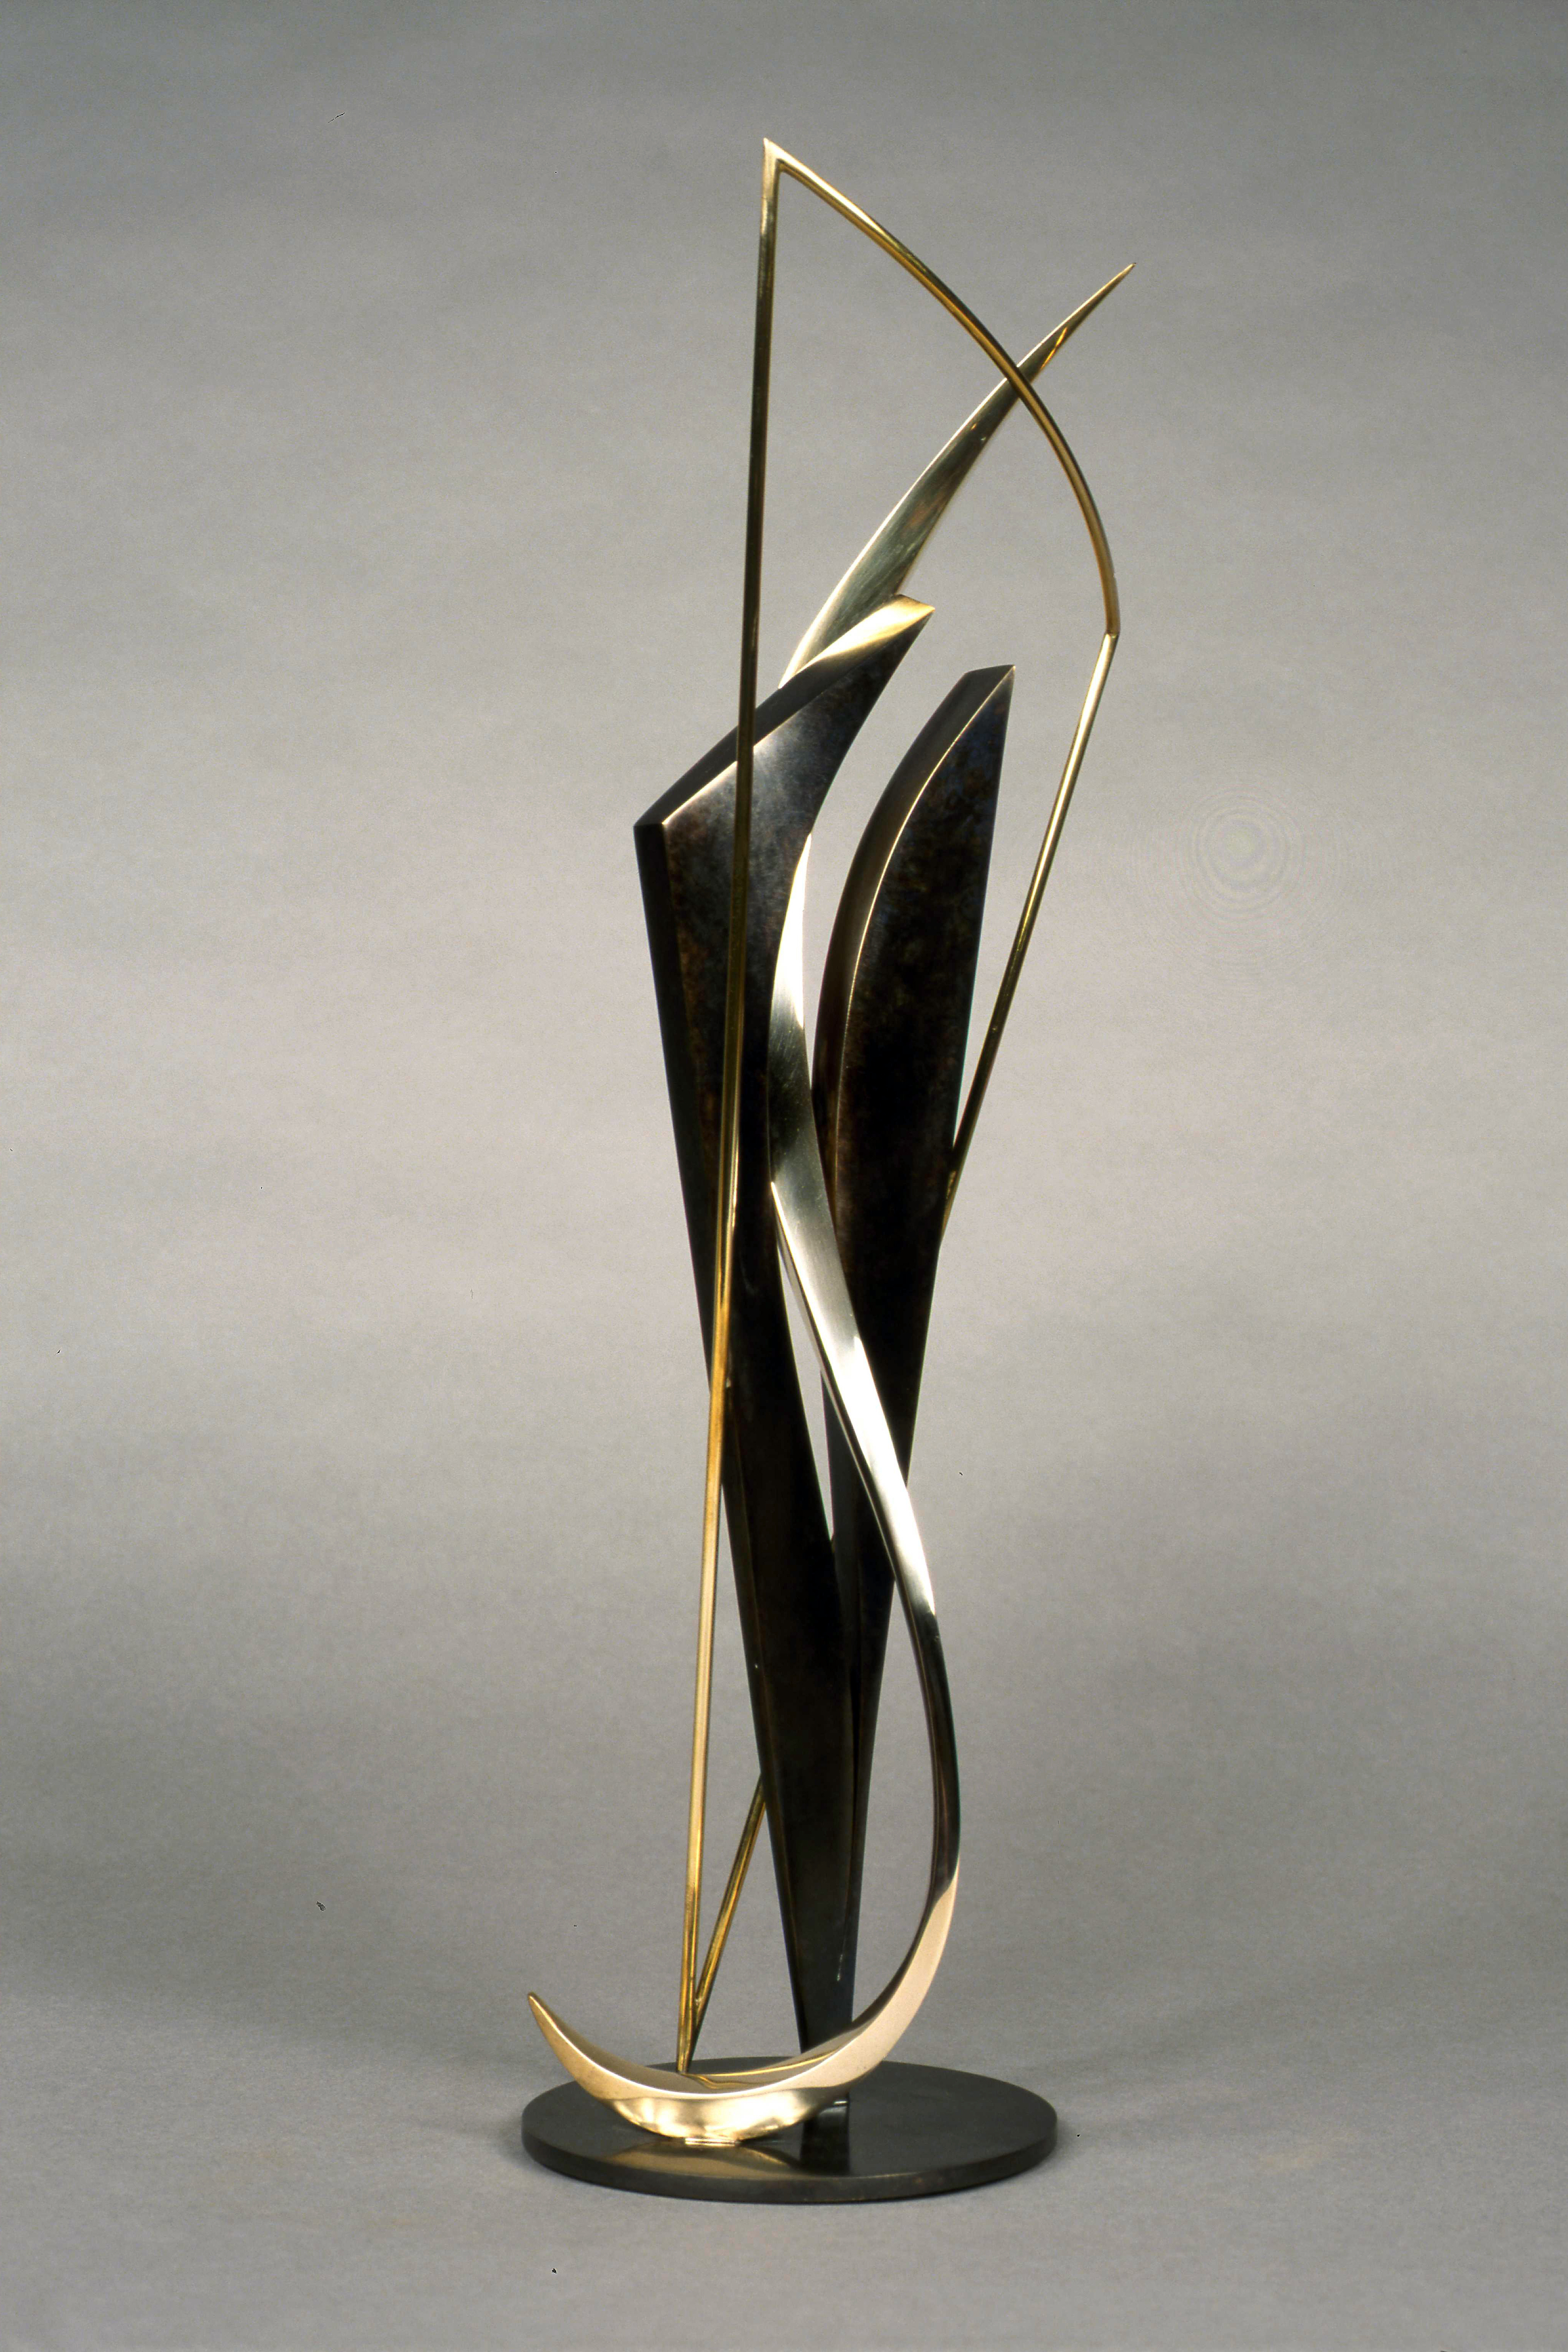 Syncronetic A, bronze